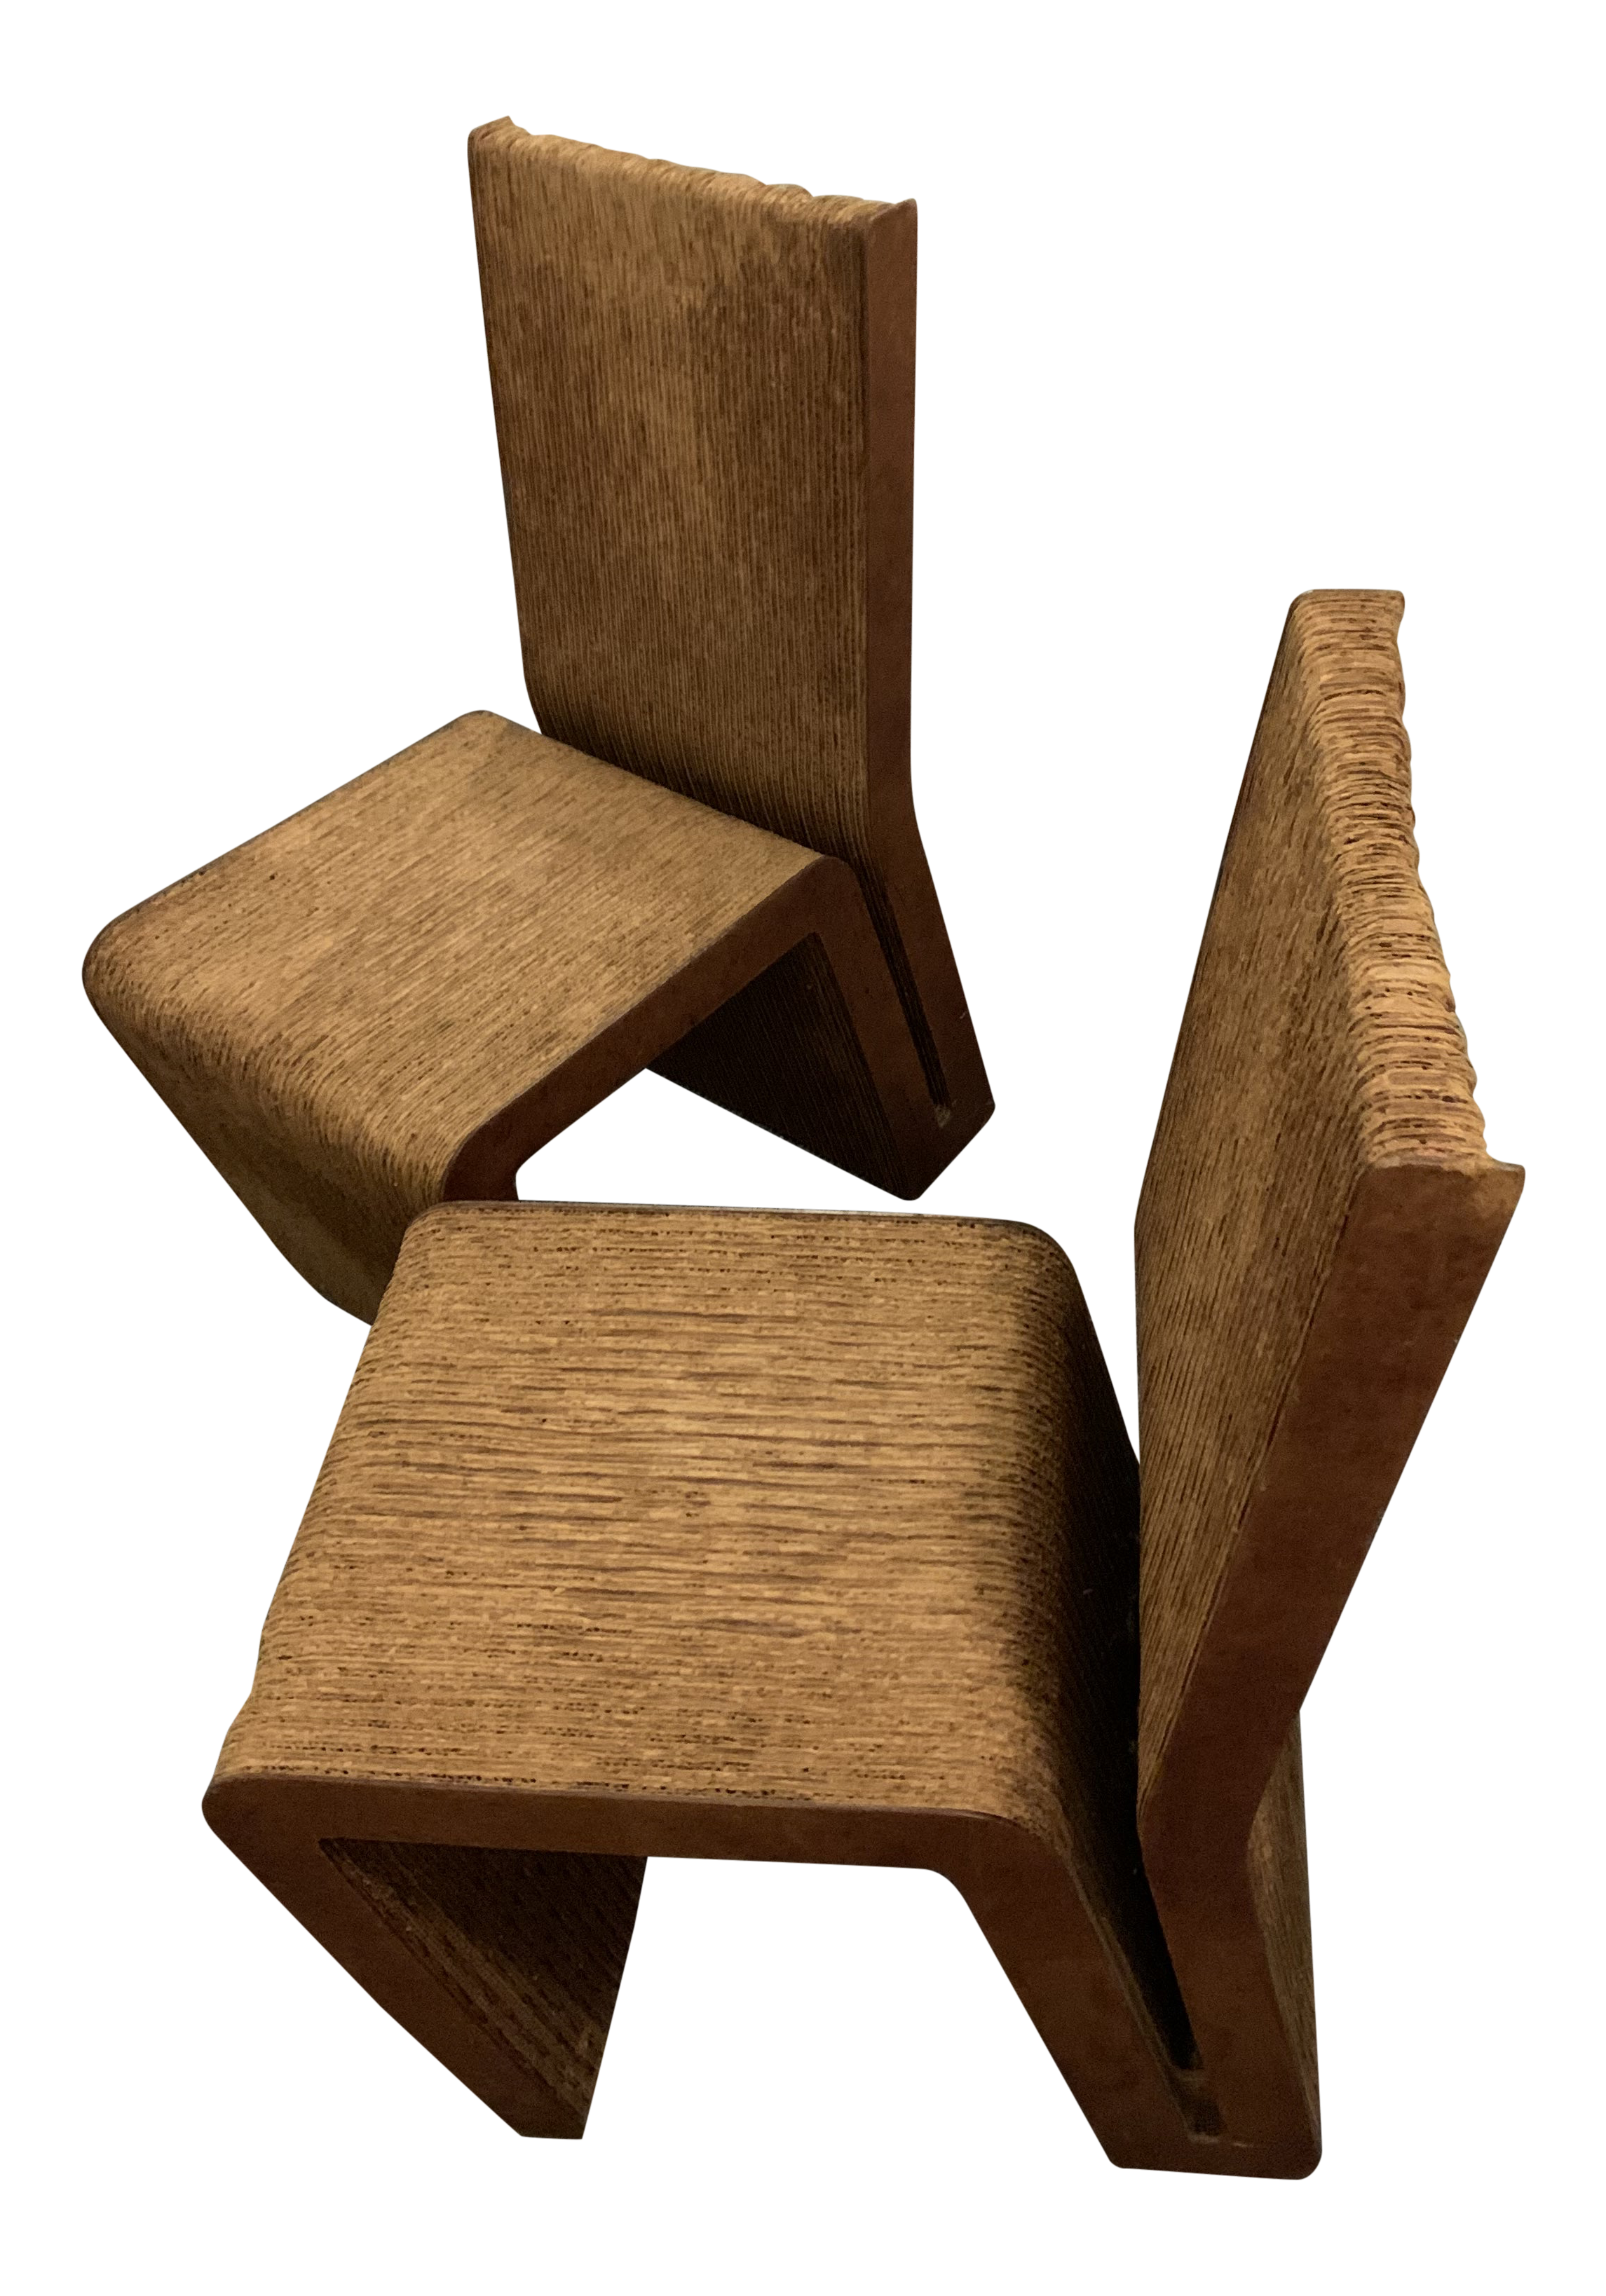 Frank Gehry Chaise Carton frank gehry cardboard side chairs - a pair